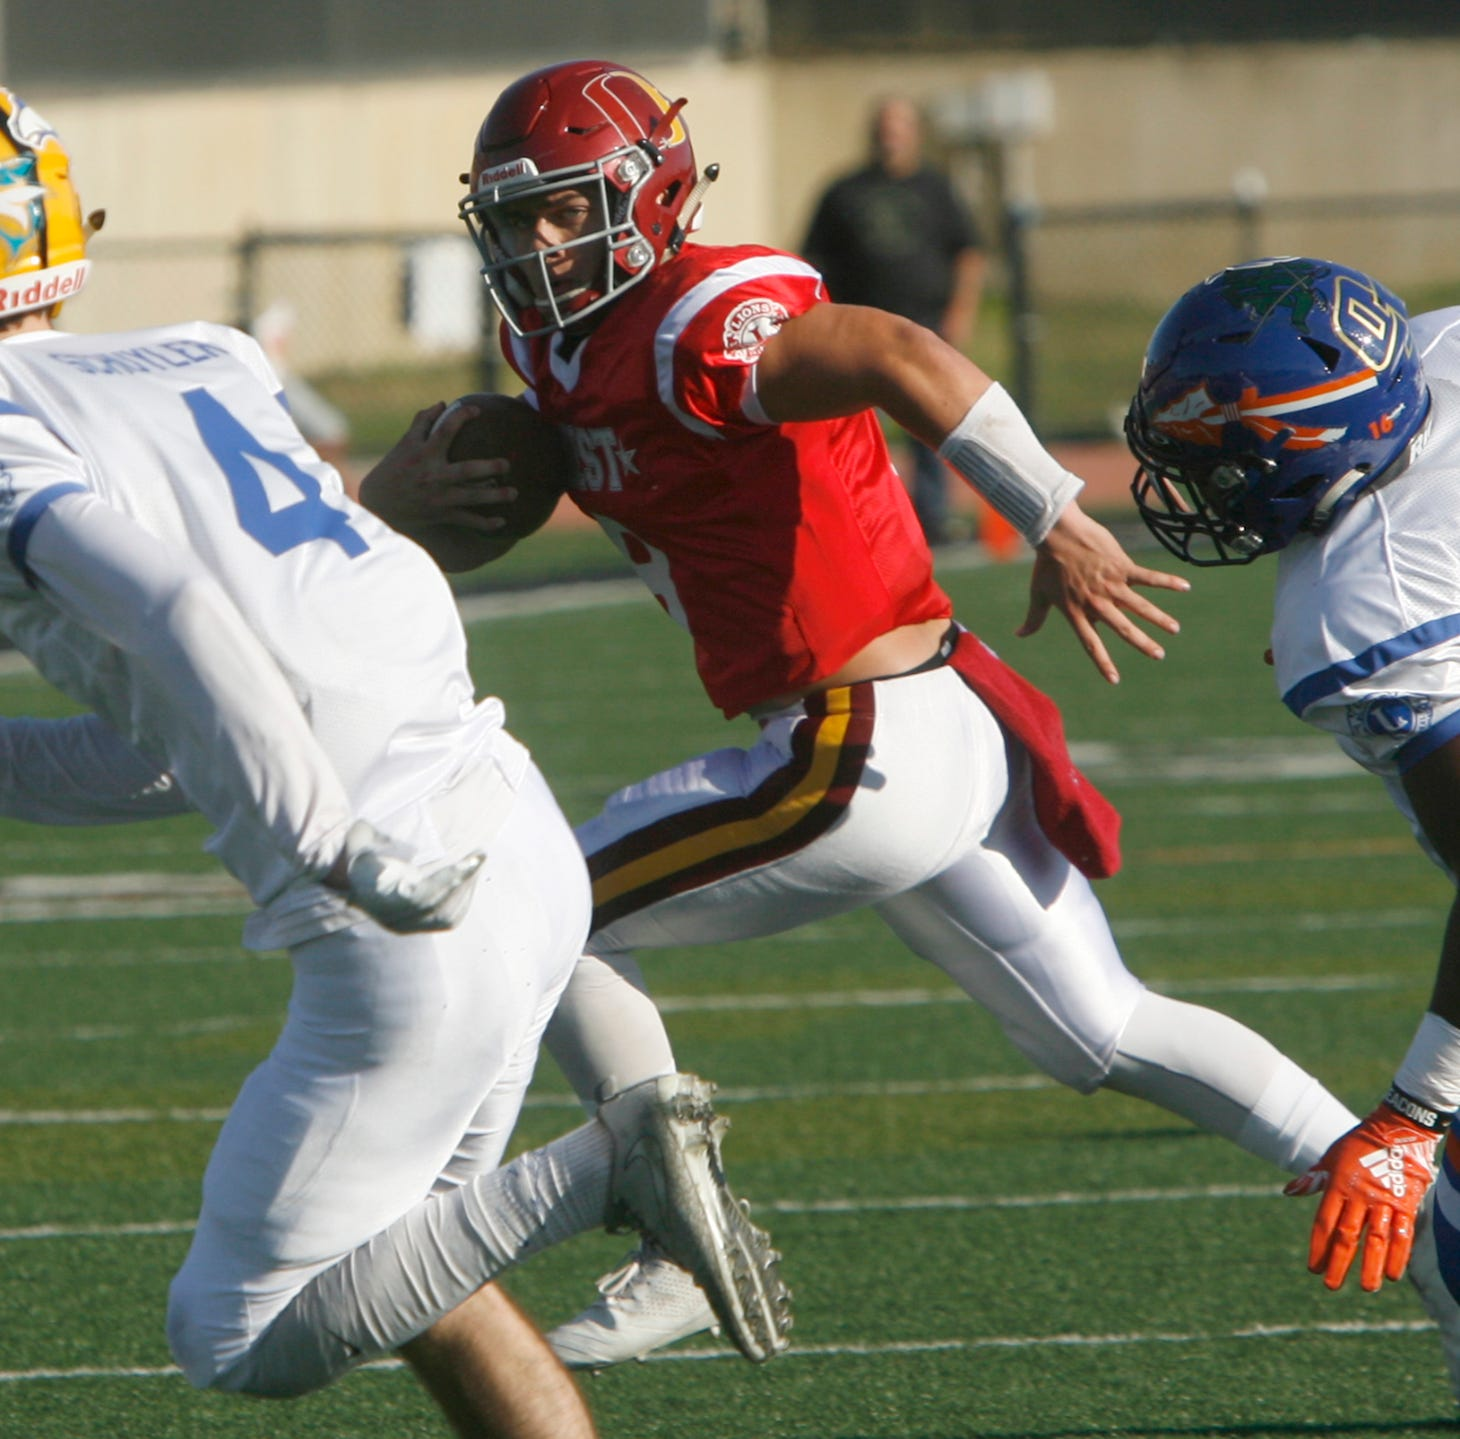 The West beats the East in the 46th annual Ventura County All-Star Football Game